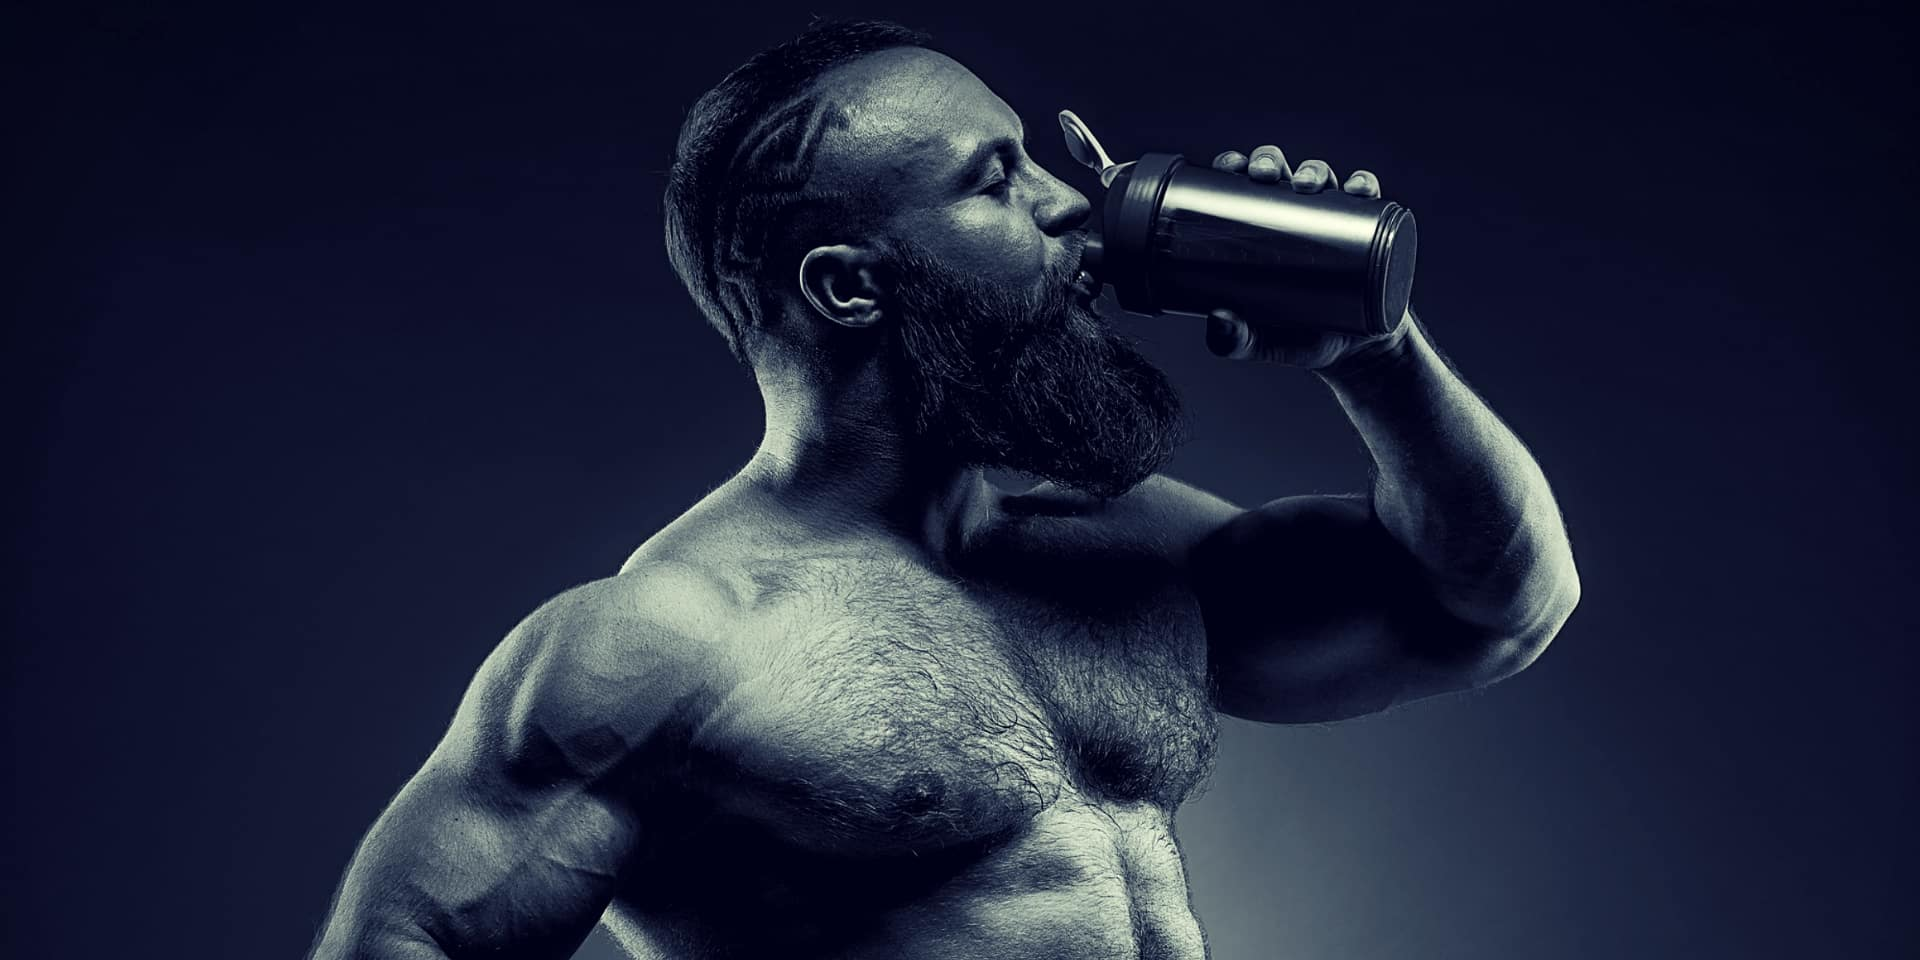 Pine Pollen Benefits bearded Man bodybuilder posing on gray background